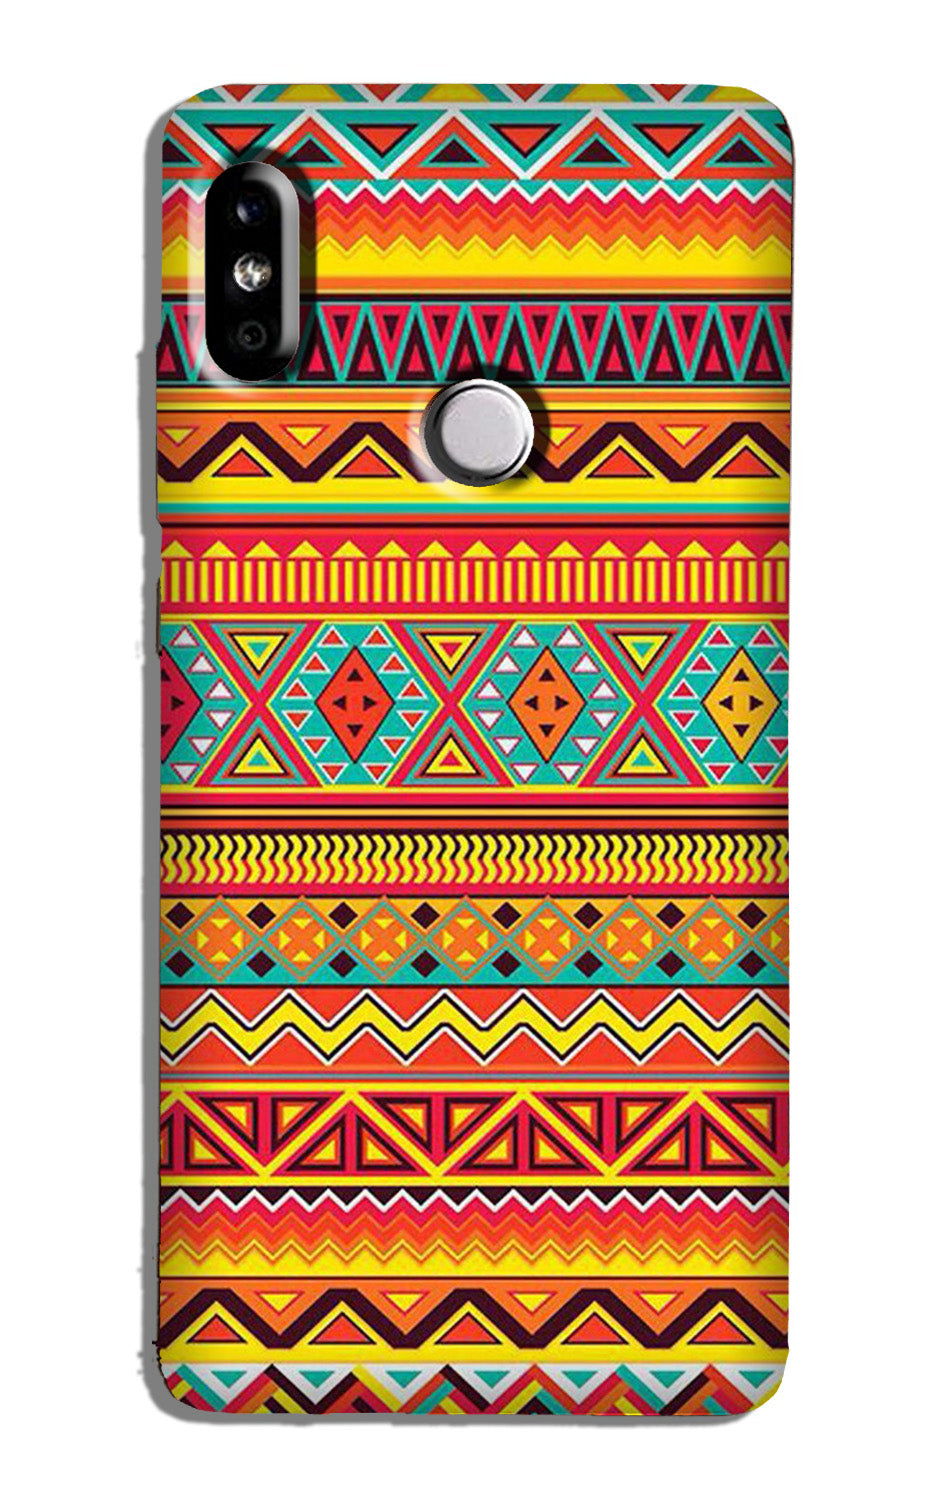 Zigzag line pattern Case for Redmi Y2